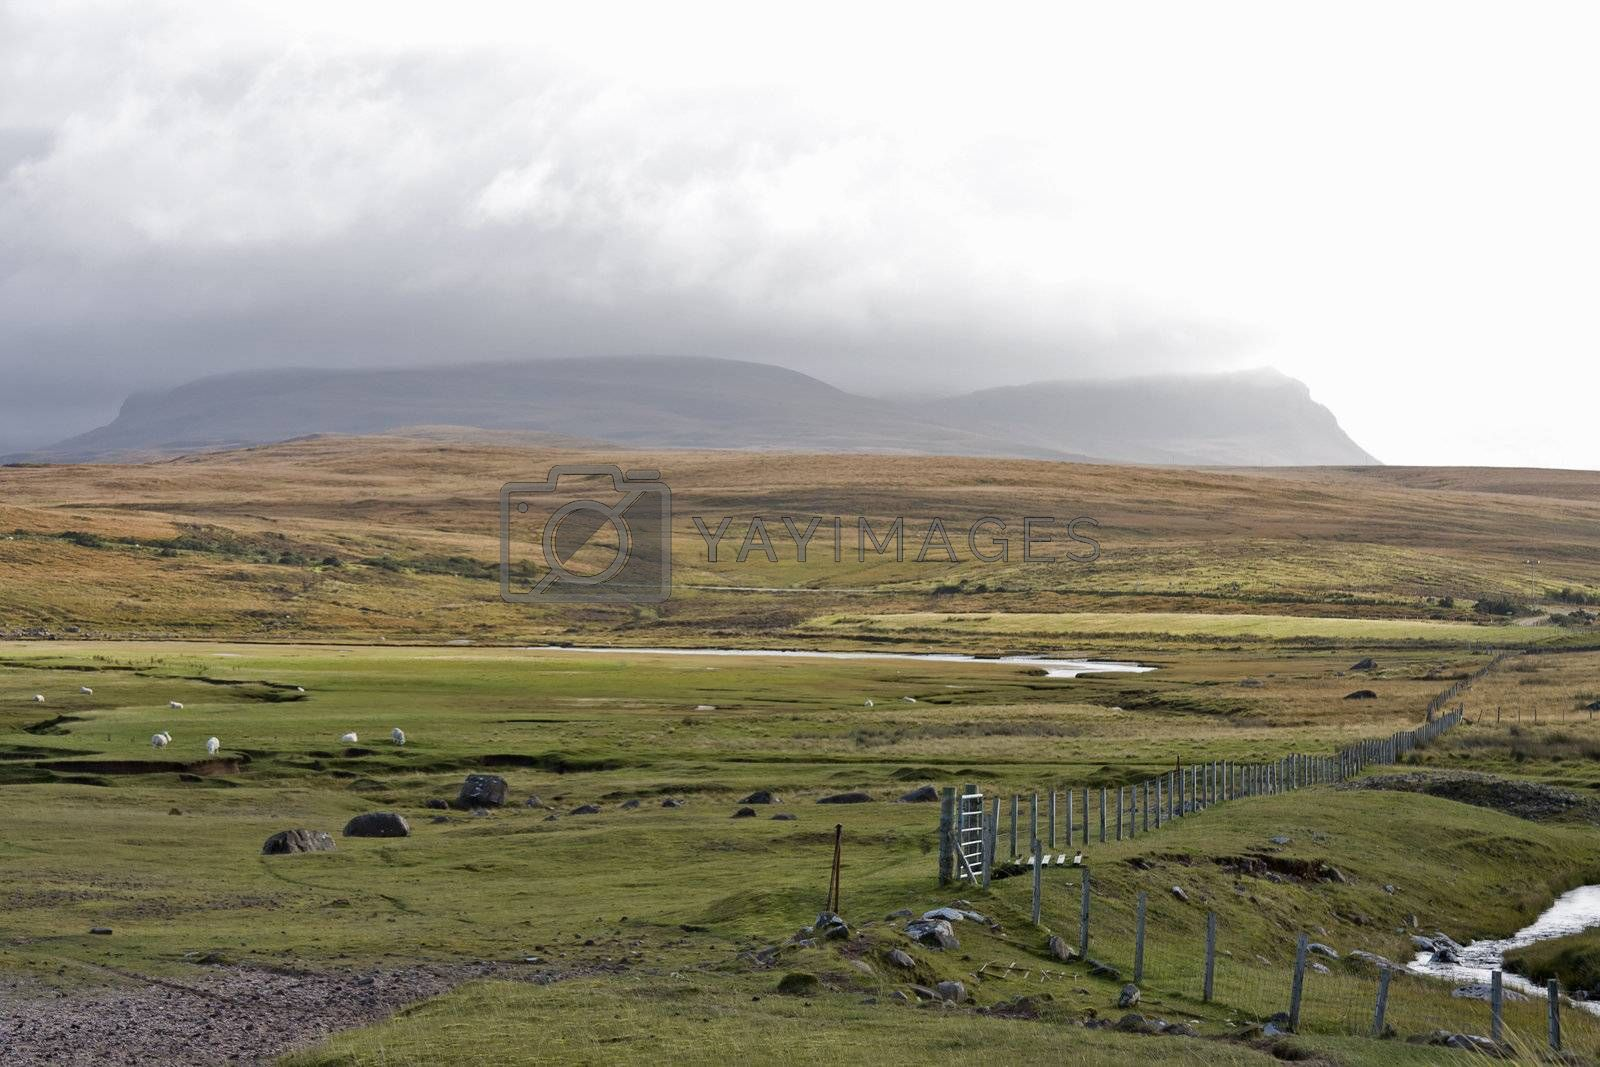 scottish landscape with mountains in background and grass in front